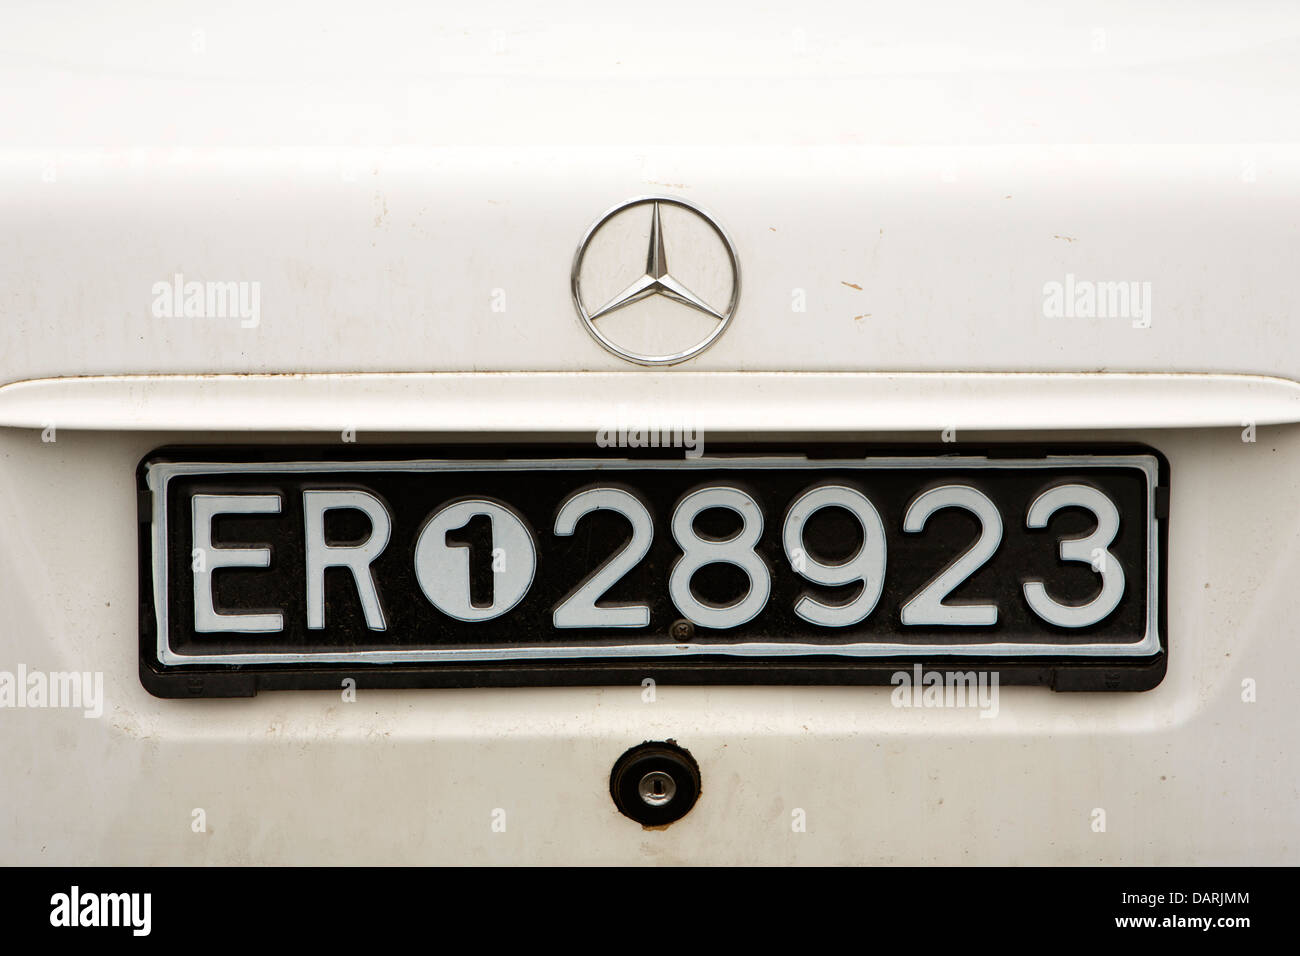 Africa, Eritrea, Massawa, Old Town, Eritrean vehicle number plate on rear Mercedes car - Stock Image